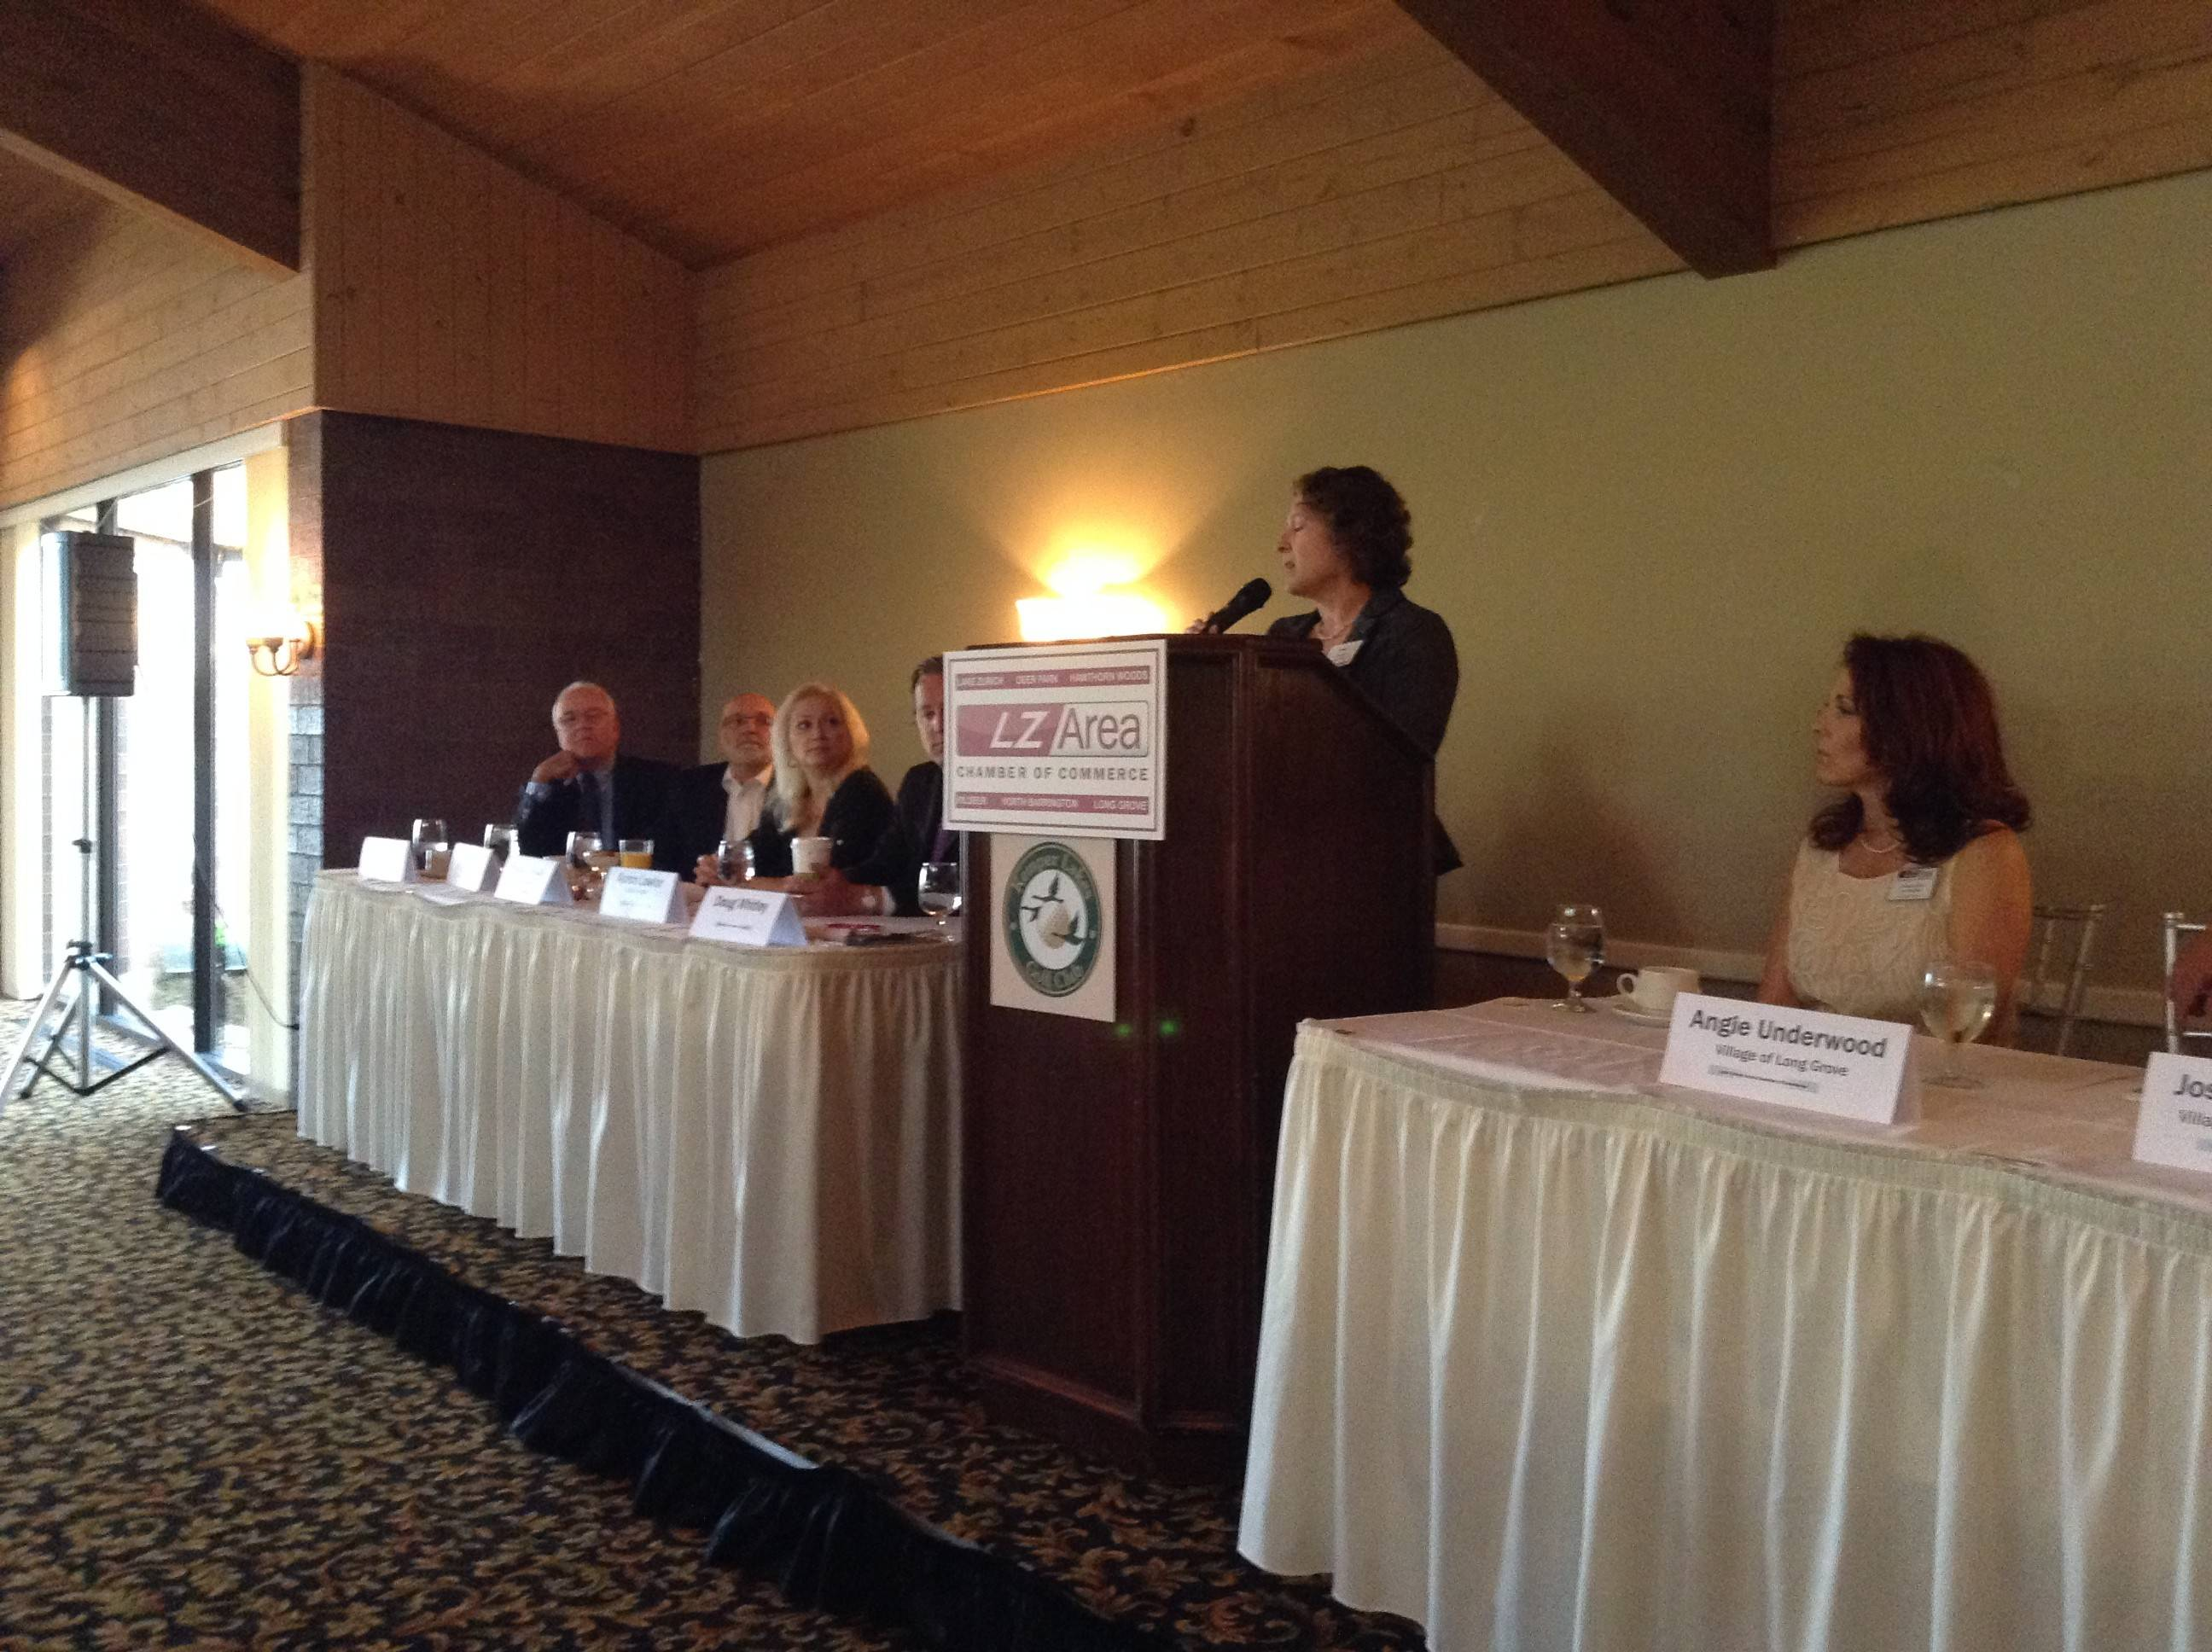 Long Grove Village President Angie Underwood was among the top elected officials to speak at Thursday's Lake Zurich Area Chamber of Commerce Breakfast With the Villages at Kemper Lakes Golf Club.